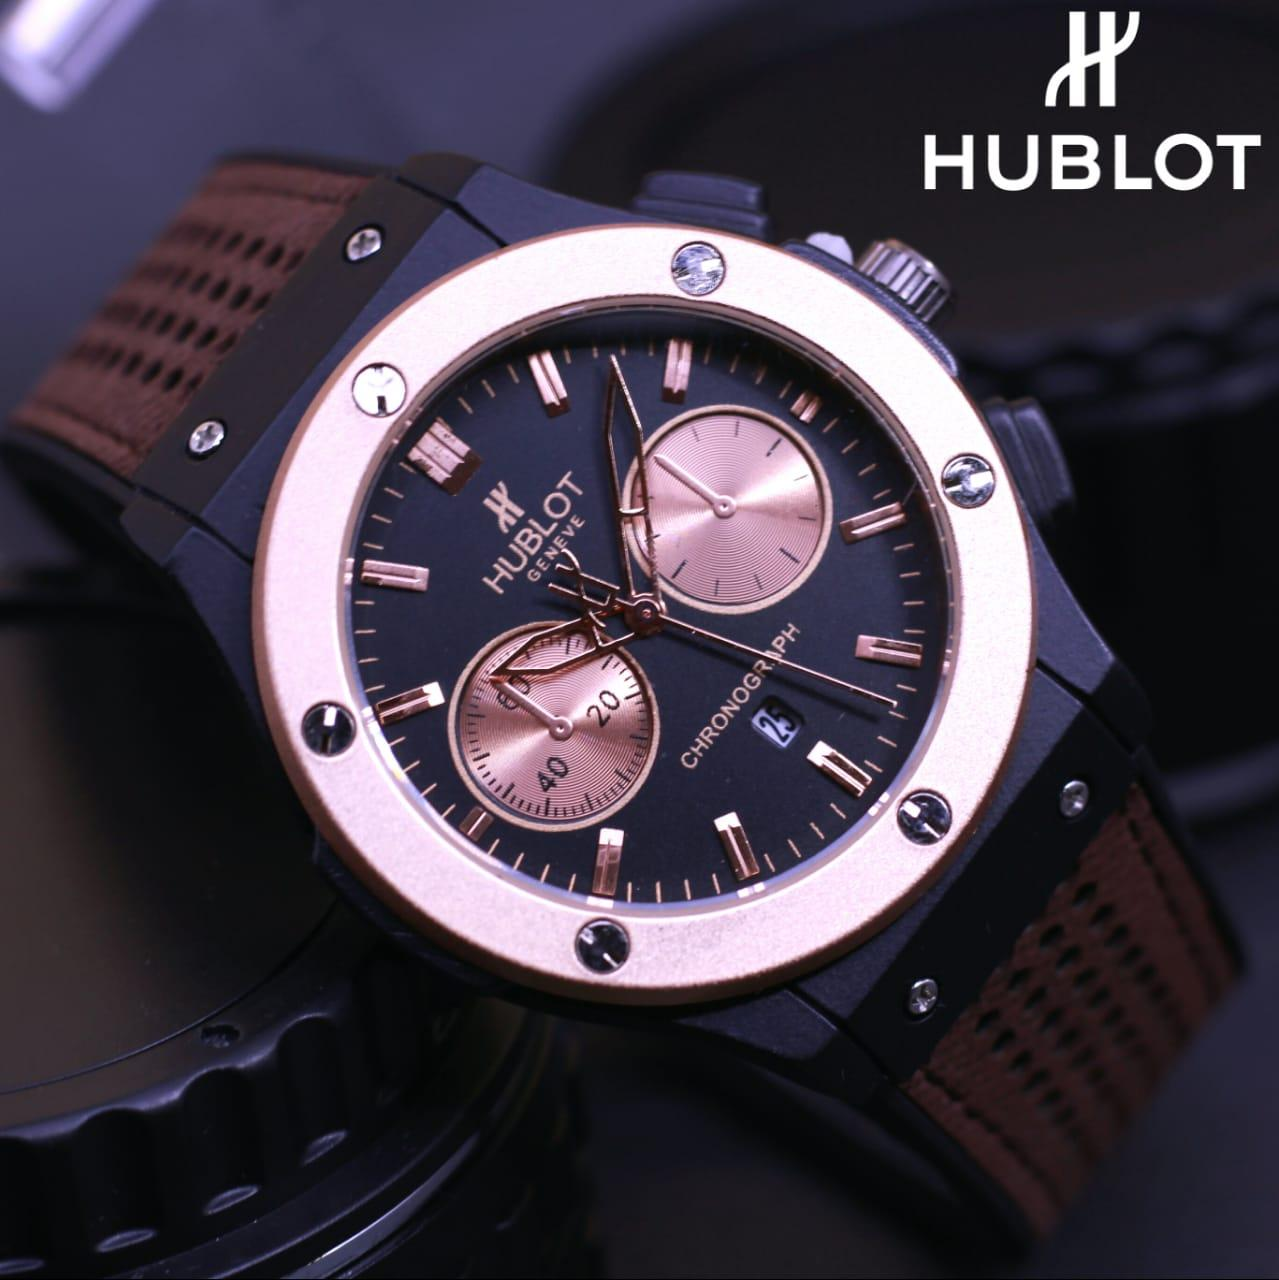 Jam Tangan Hublot Armageddon - Limited Edition Elegant Series-Pria Wanita Formal Kasual Terbaru-Women or Men Luxury Watch-Leather Strap-Kulit Kanvas Army Kekinian Sporty Fashionable Bonus Zippo Premium Beam Korek Free Trend 2018